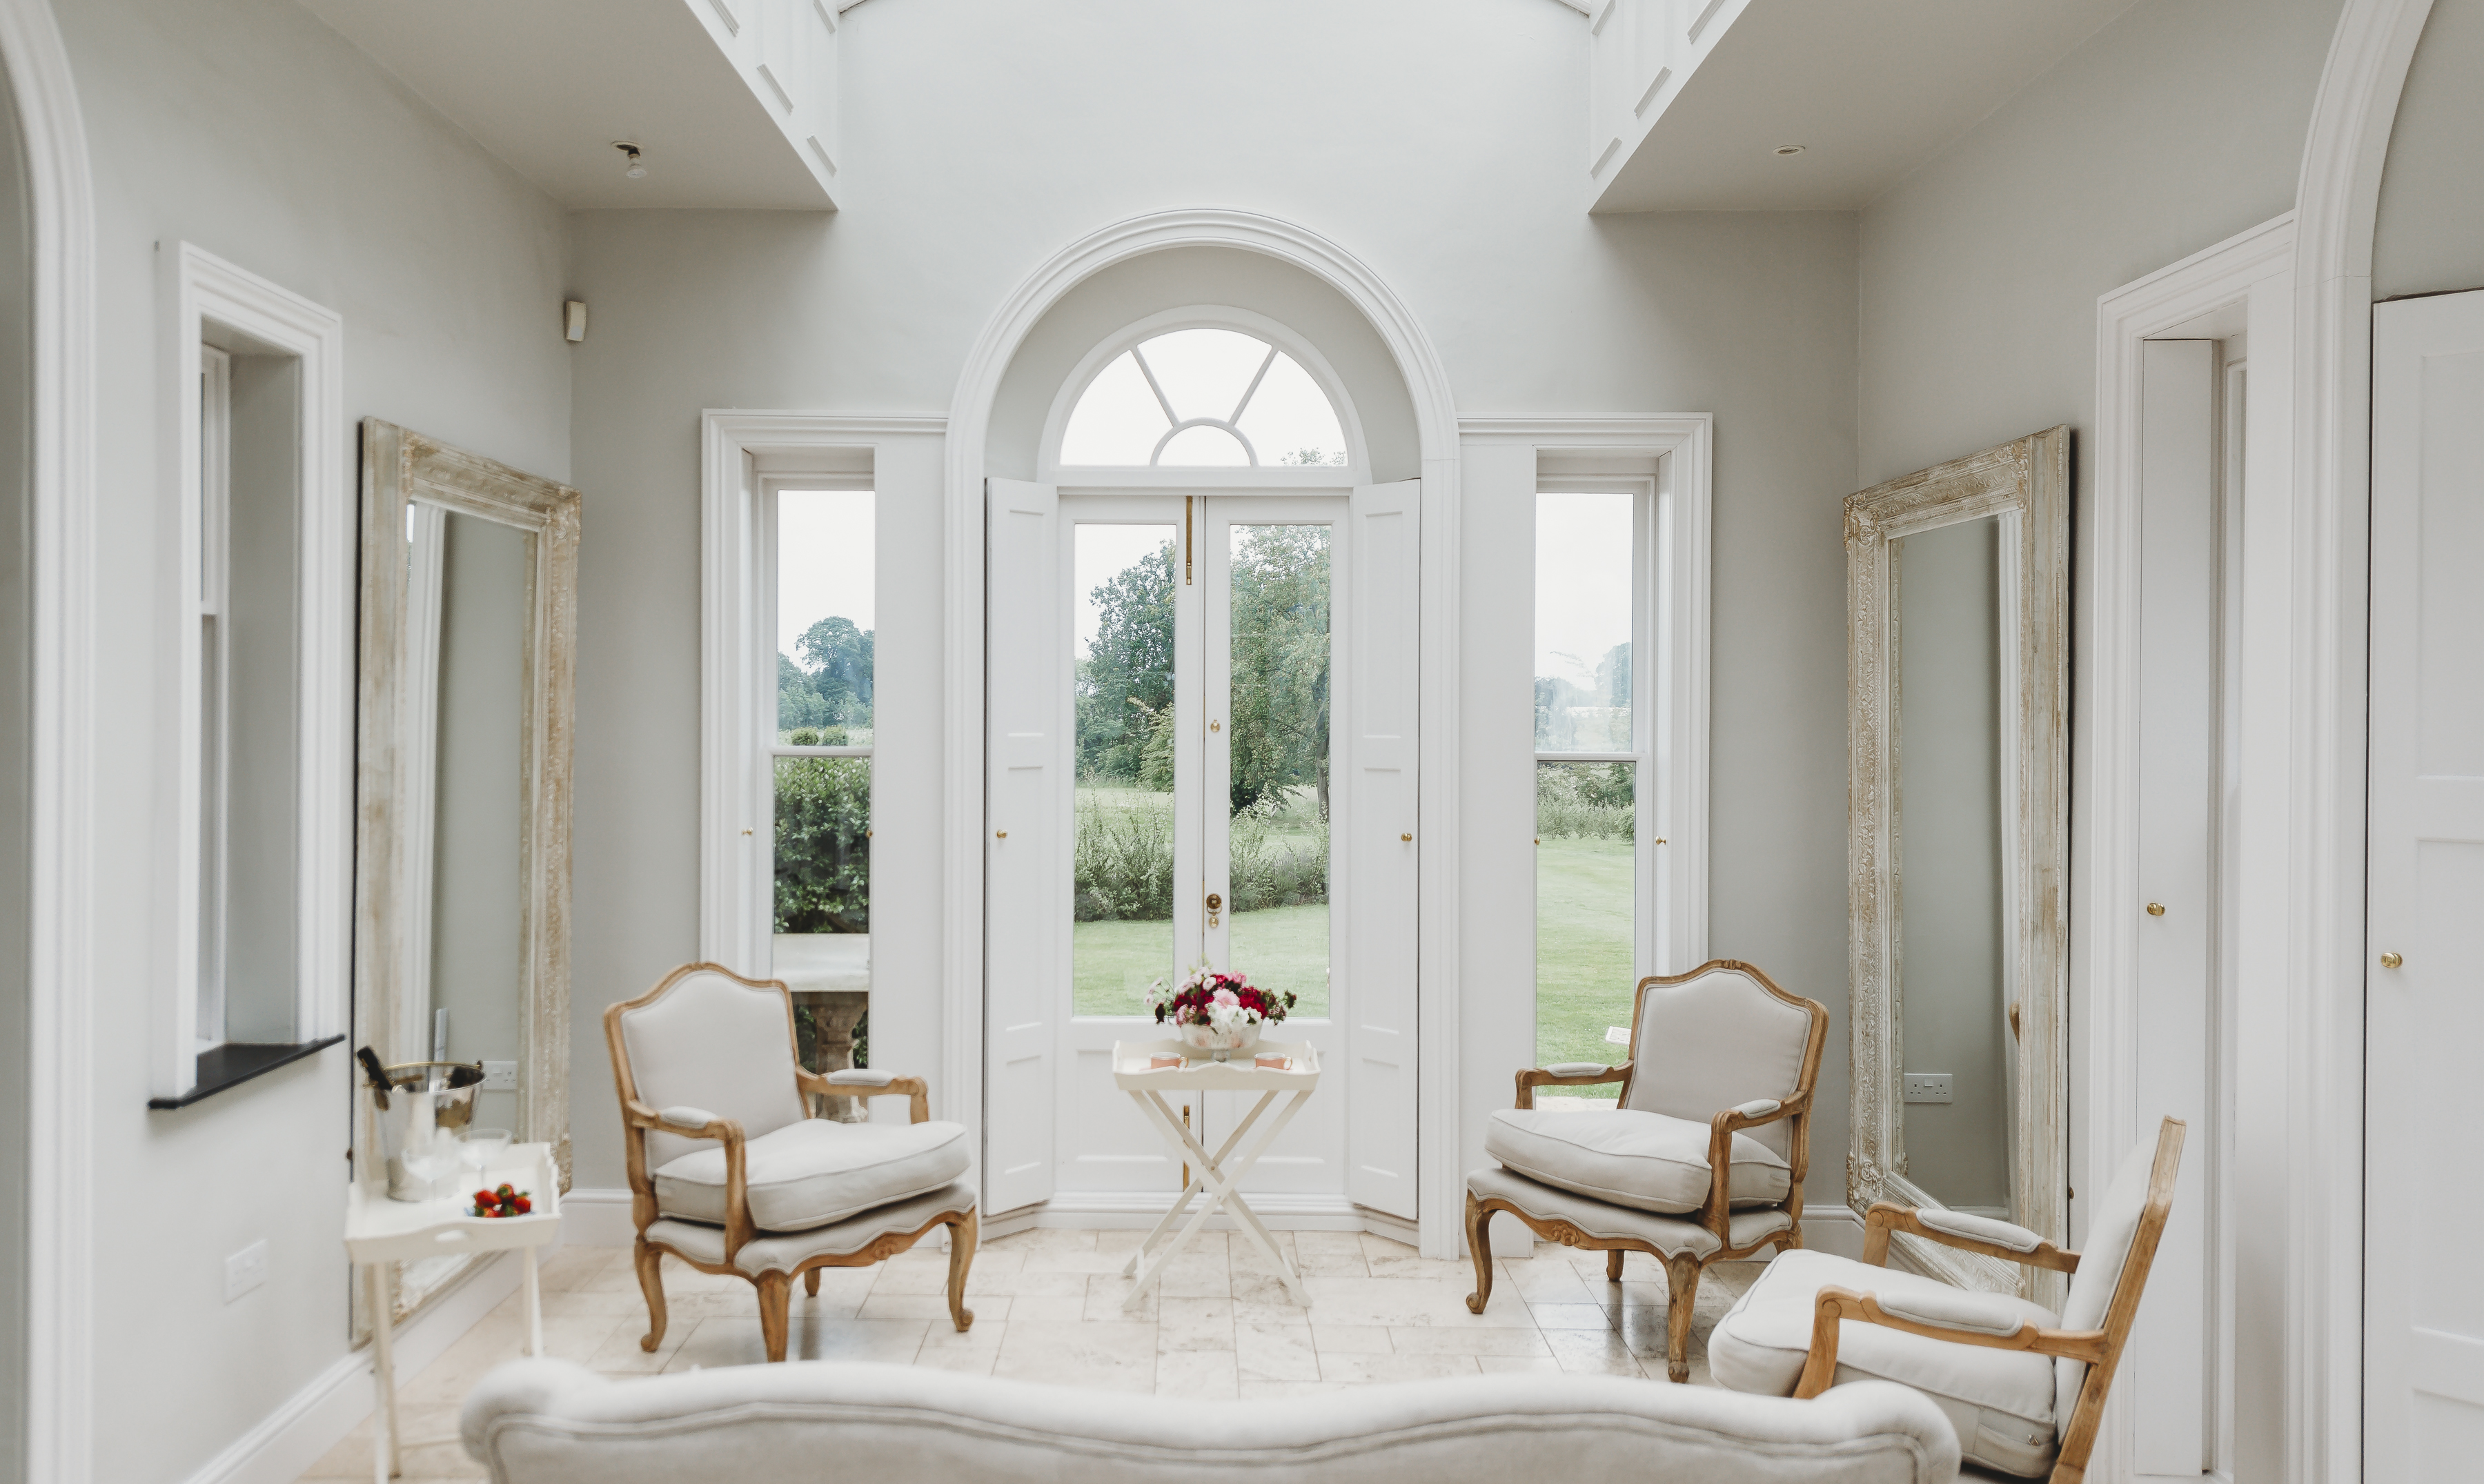 Bridal Orangery overlooking the Grounds